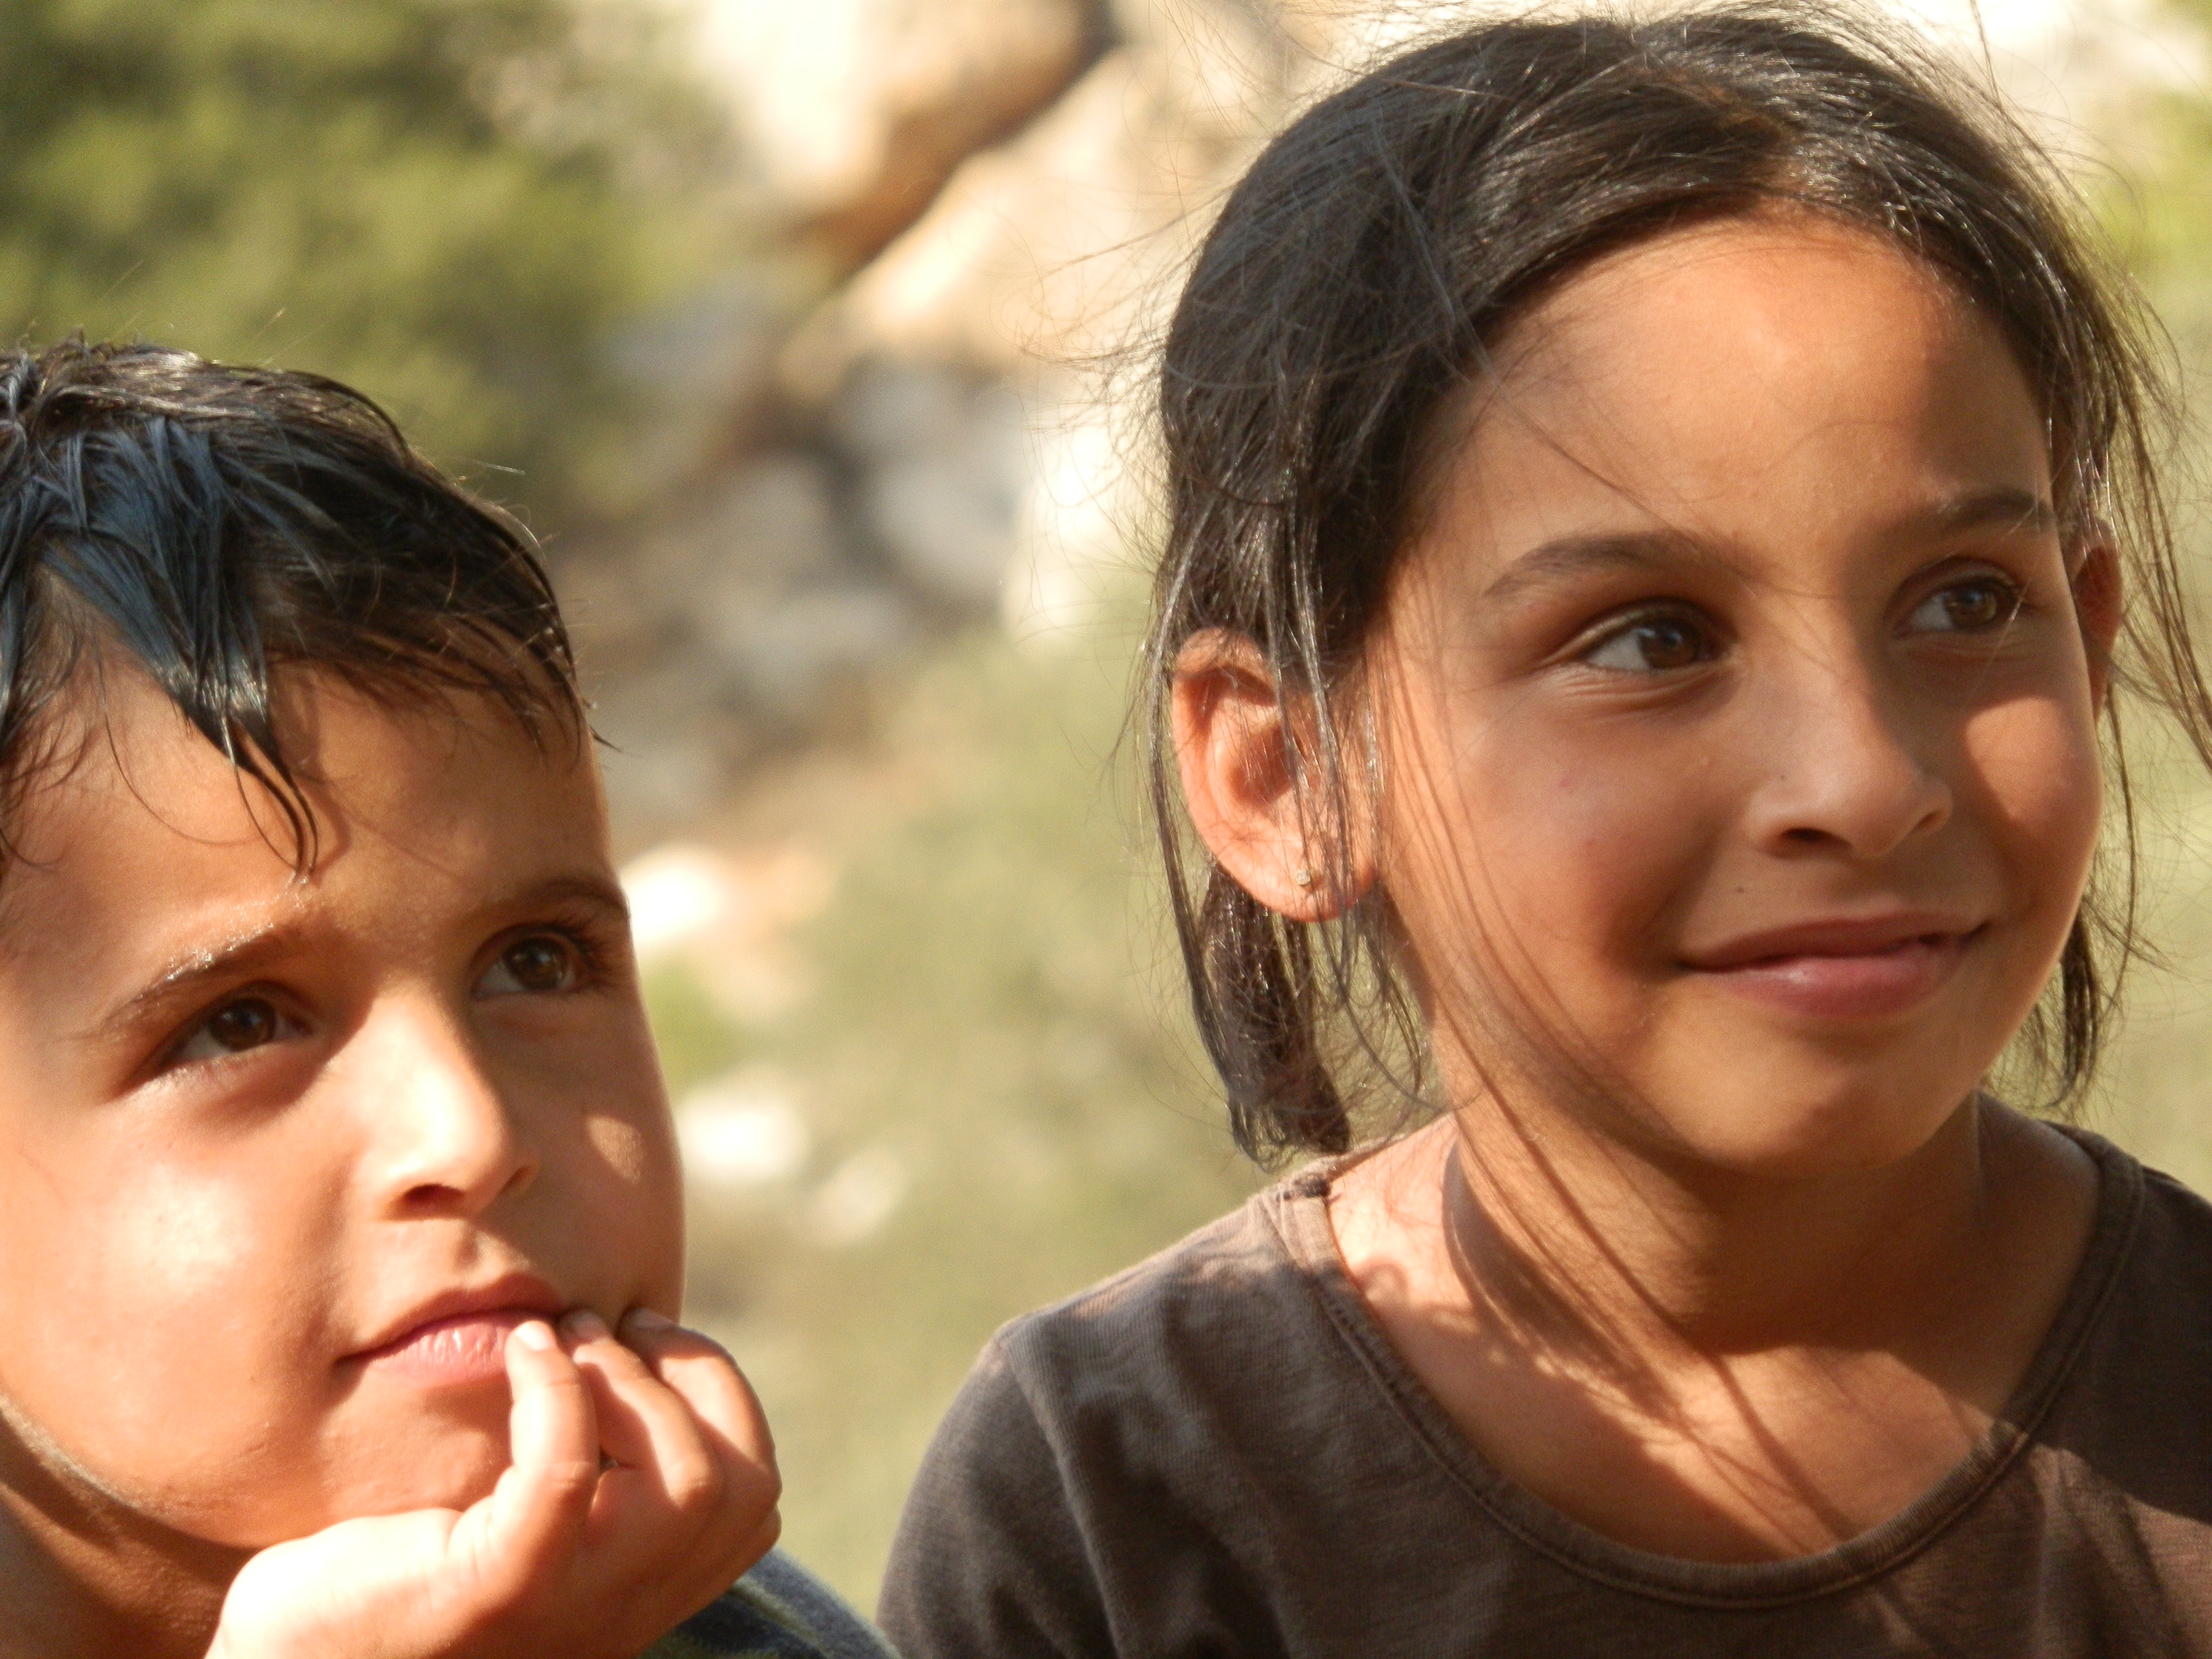 Israel confiscated the family land of these two siblings to build the illegal Apartheid Wall in the West Bank.  I watched as it happened.